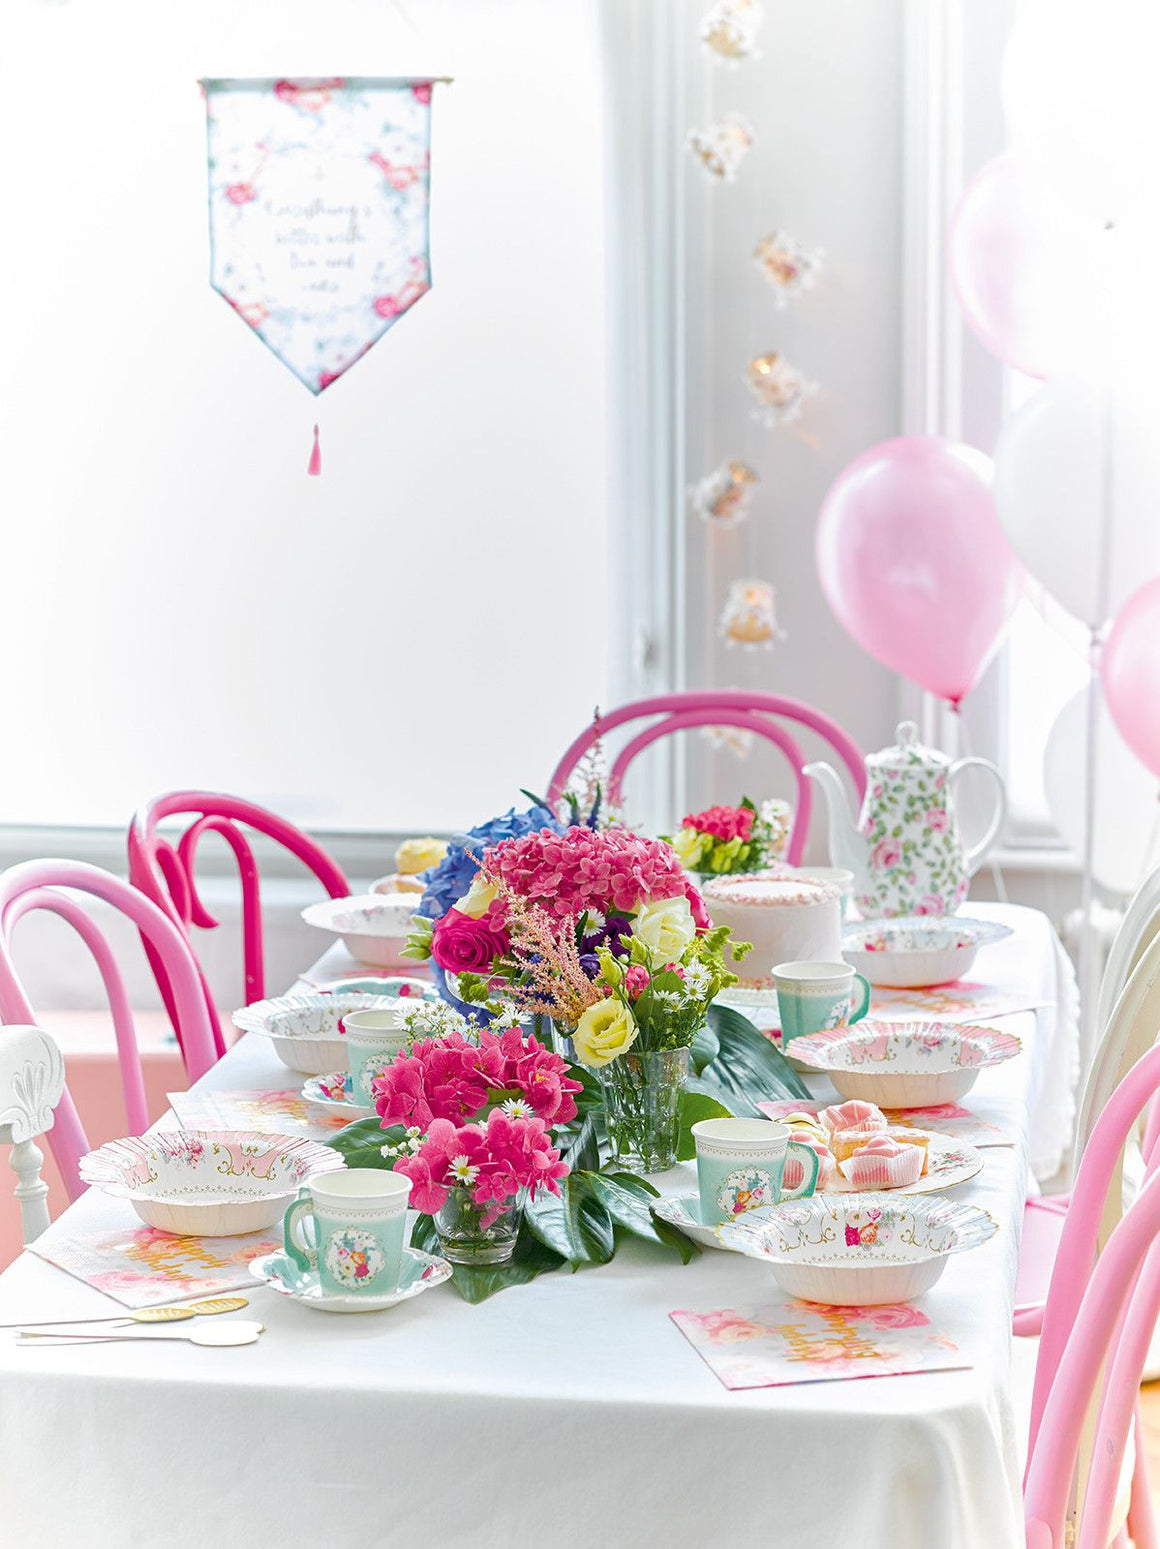 CUPS - TRULY SCRUMPTIOUS TEACUP + SAUCER, CUPS, TALKING TABLES - Bon + Co. Party Studio